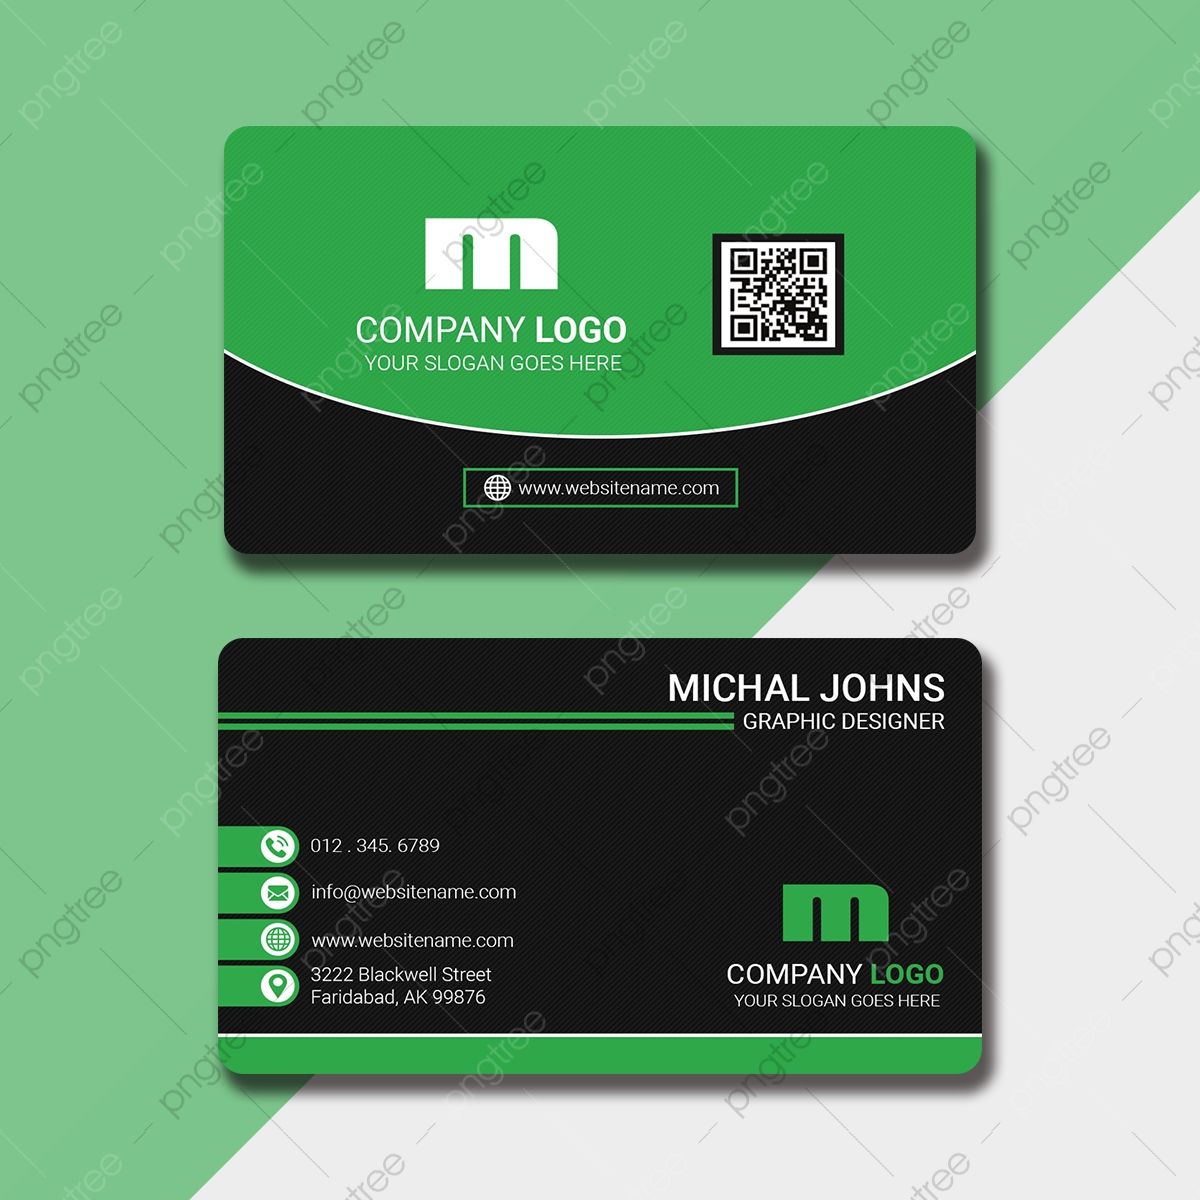 Modern Lime Business Card With Qr Code Template Download on Pngtree